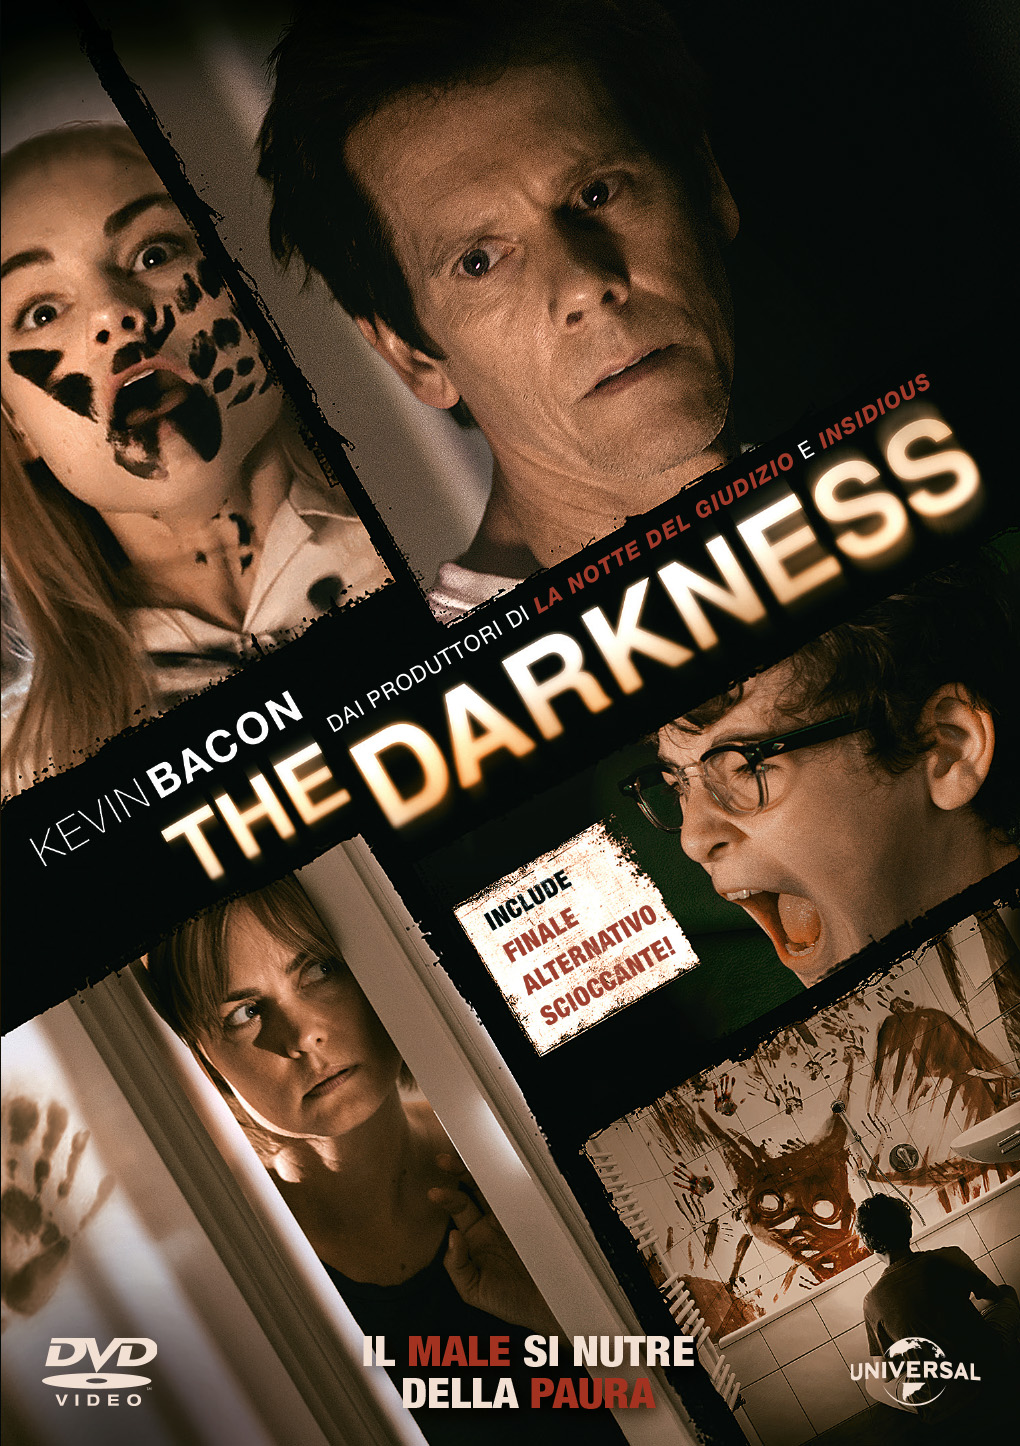 THE DARKNESS (DVD)